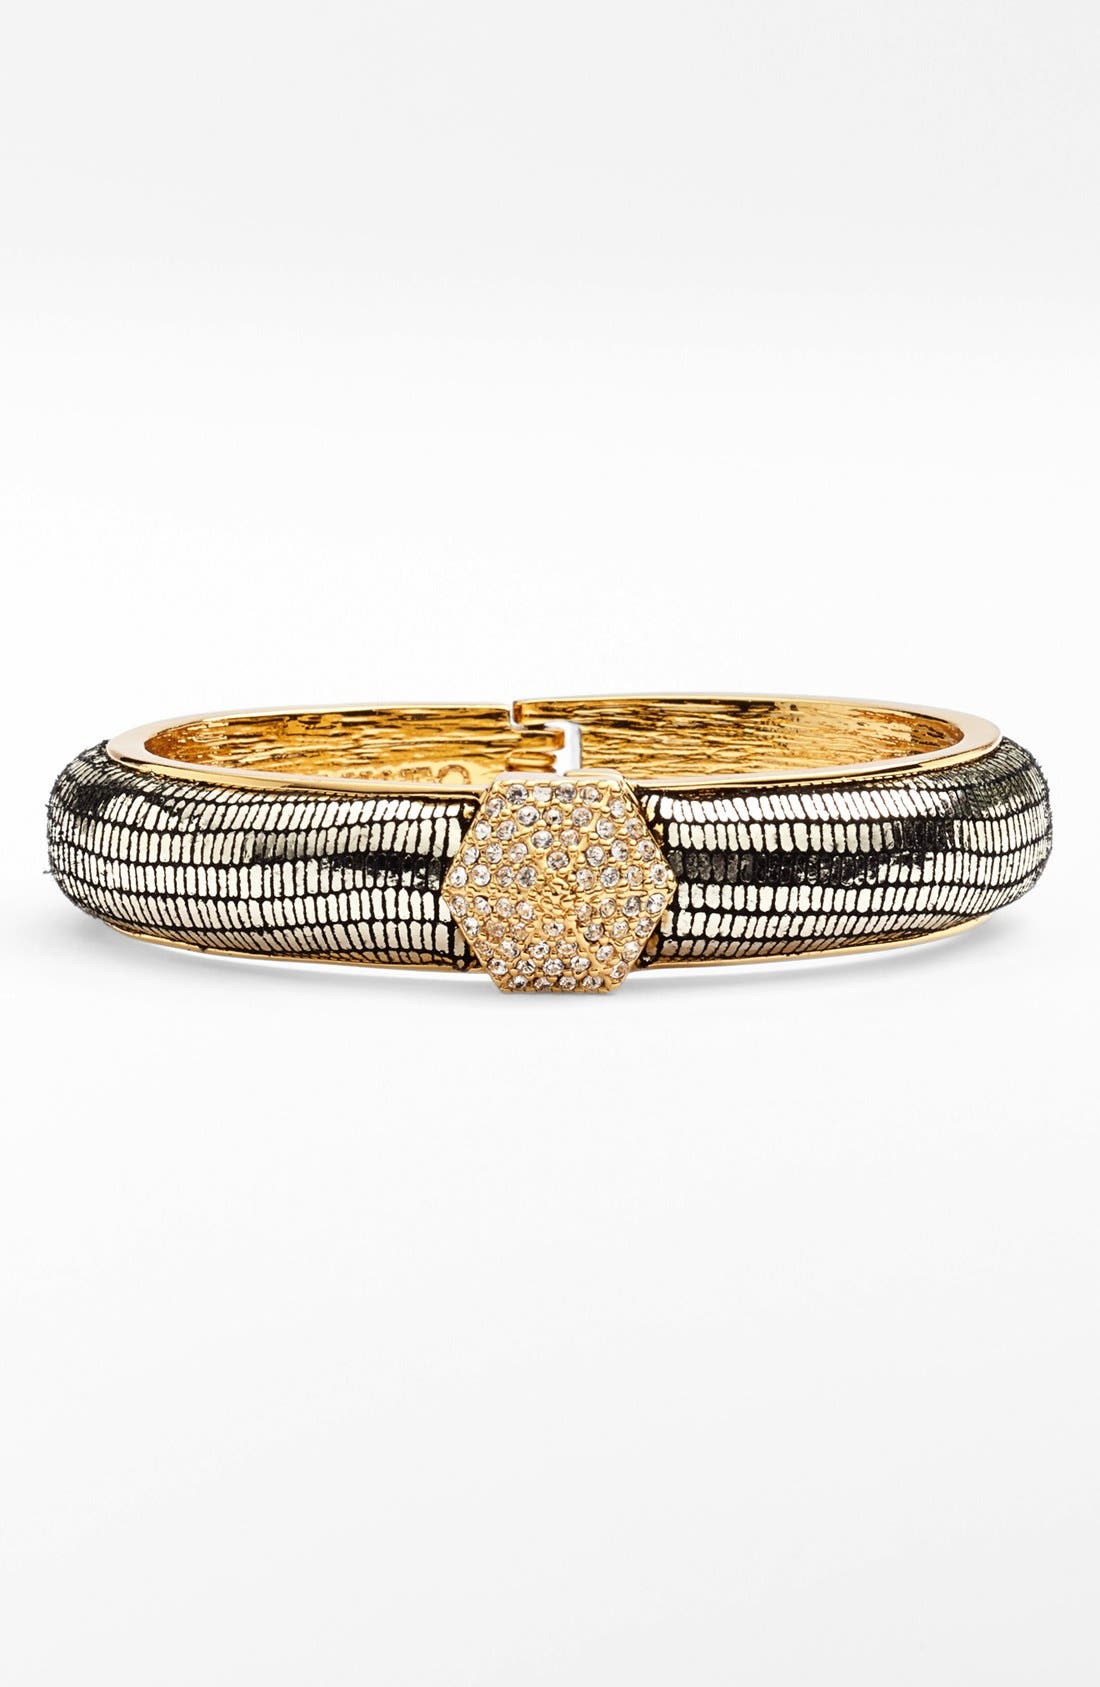 Alternate Image 1 Selected - Vince Camuto Pavé Stud Leather Hinged Bangle